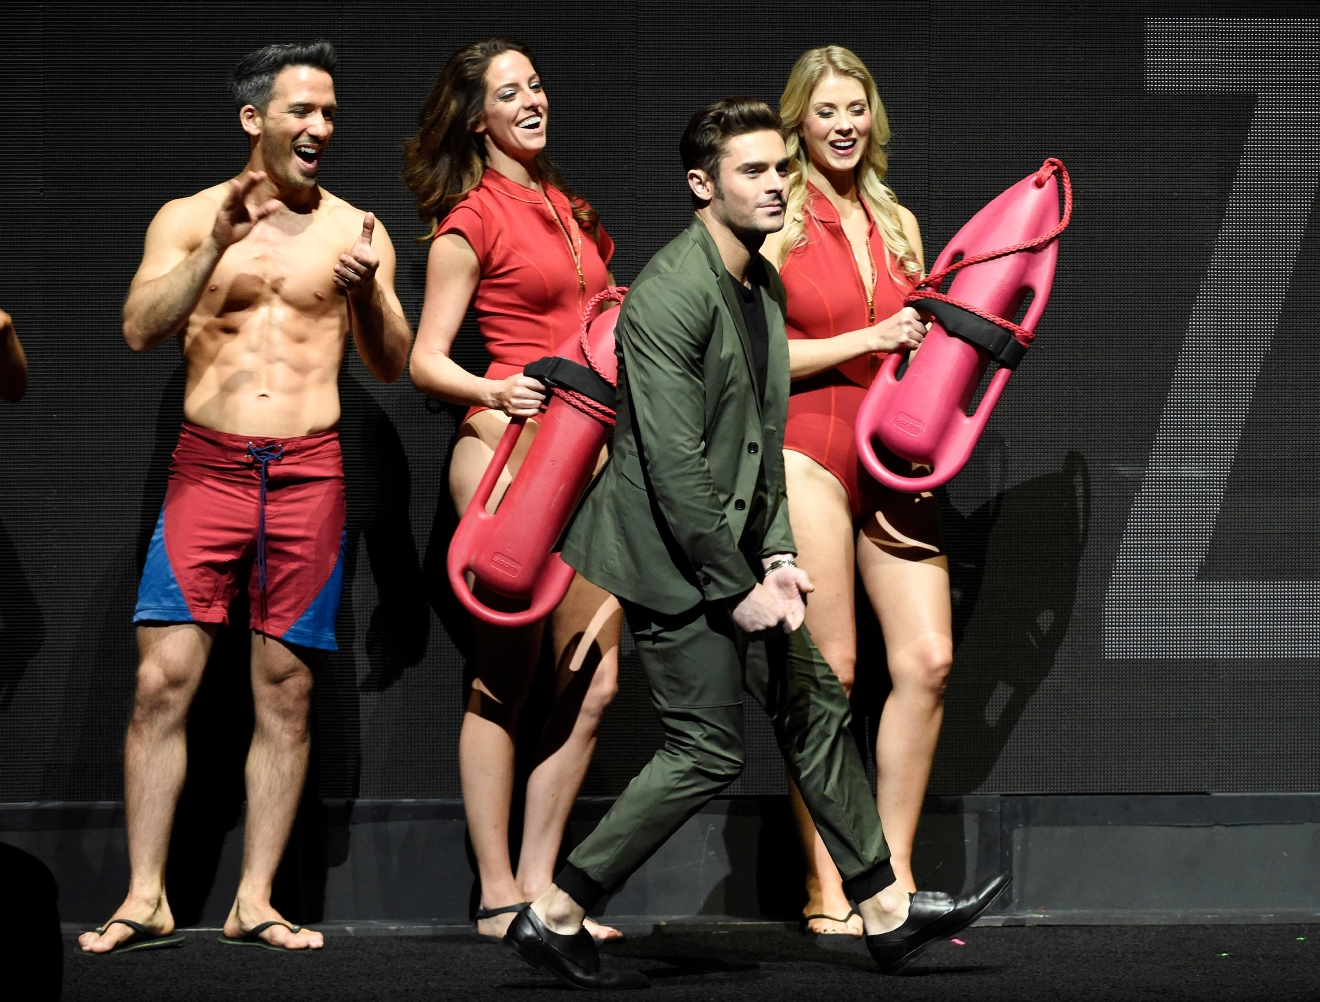 "Zac Efron, a cast member in ""Baywatch,"" walks past models dressed as lifeguards as he is introduced to the crowd during the Paramount Pictures presentation at CinemaCon 2017 at Caesars Palace on Tuesday, March 28, 2017, in Las Vegas. (Photo by Chris Pizzello/Invision/AP)"